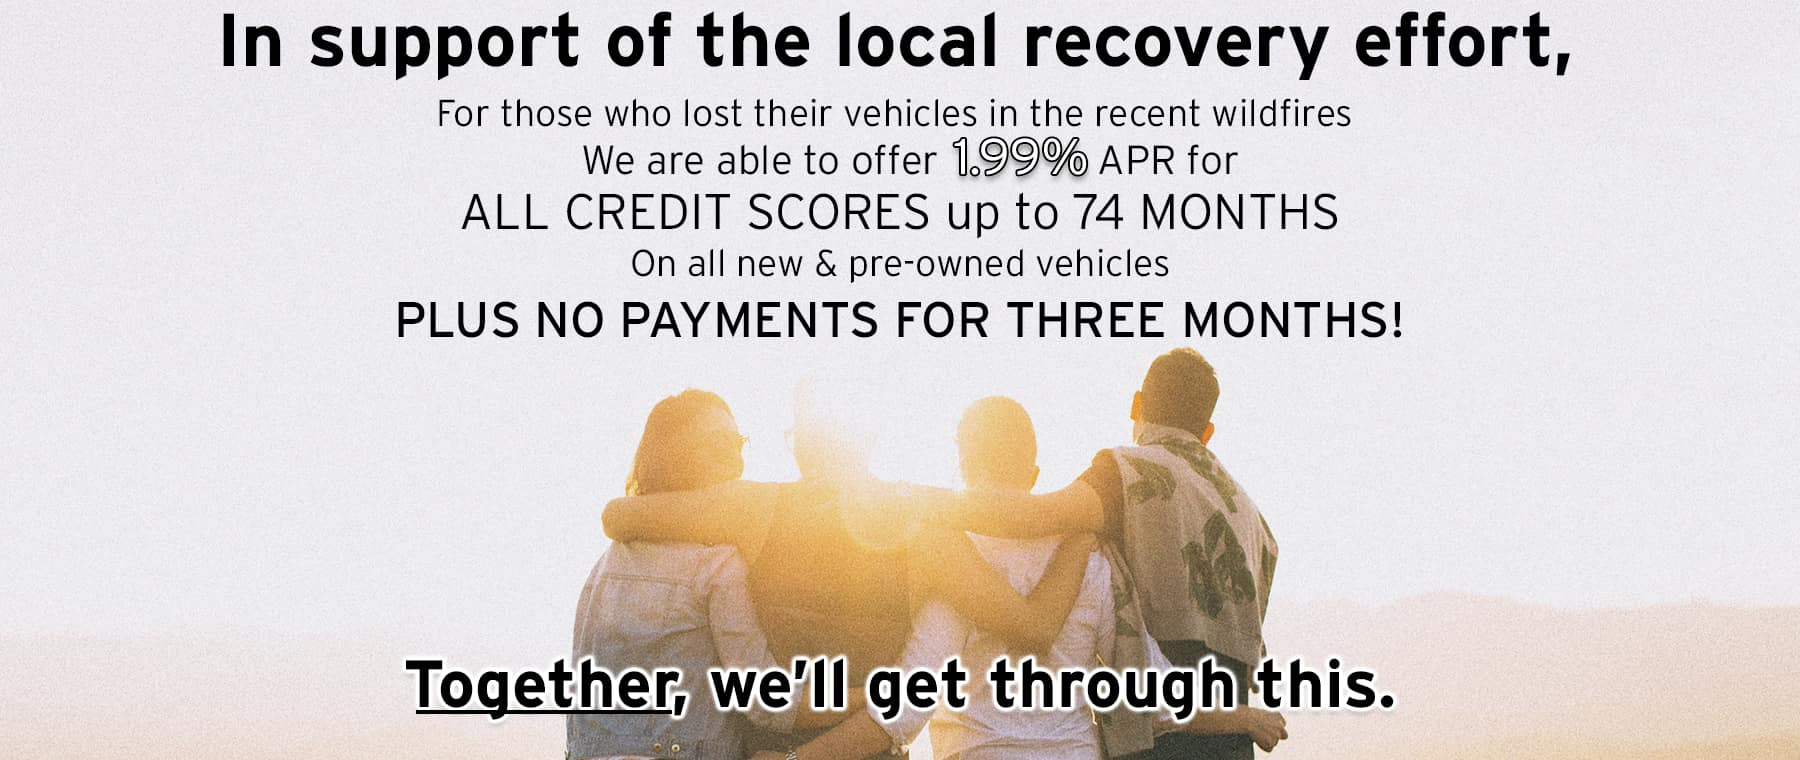 In support of the local recovery effort, for those who lost their vehicles in the recent wildfires, we're offering 1.99% APR